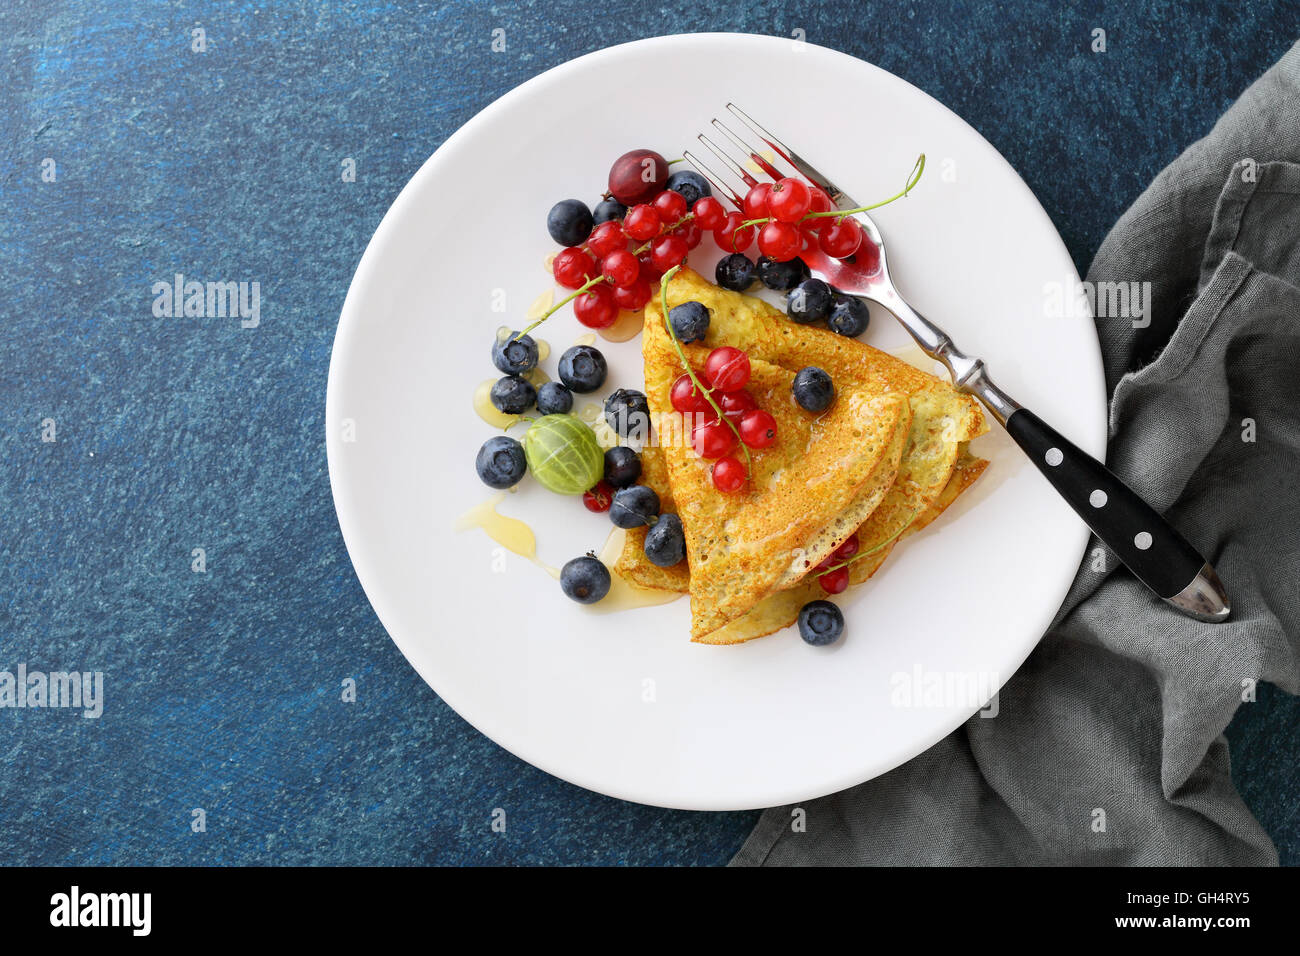 Plate With Food Top View Summer Pancake With Berries On White Plate Food Top View